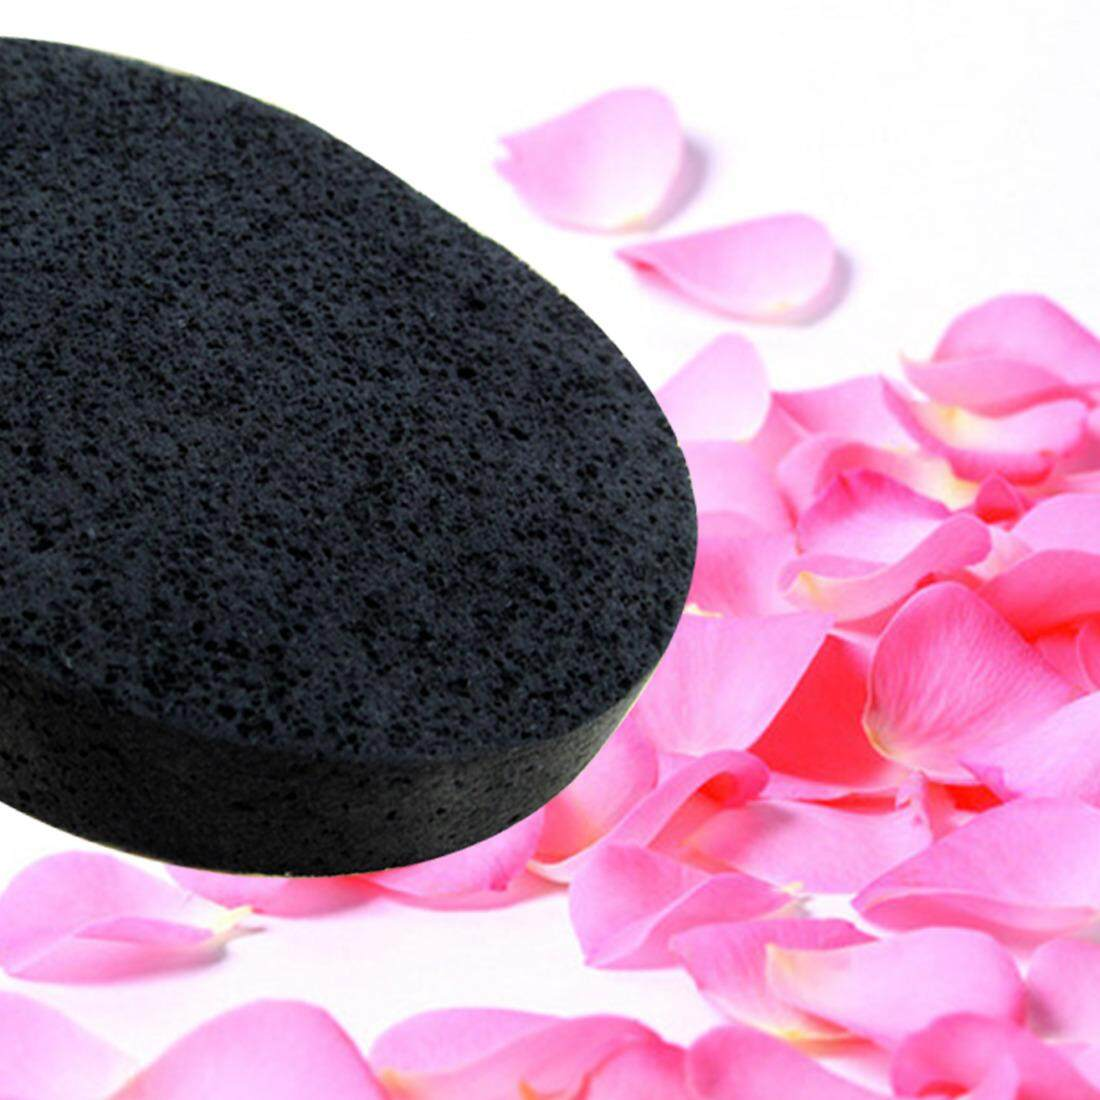 Features Natural Black Bamboo Sponge Beauty Facial Wash Cleaning Msi Charcoal 2pcs Cosmetic Puff Intl 3